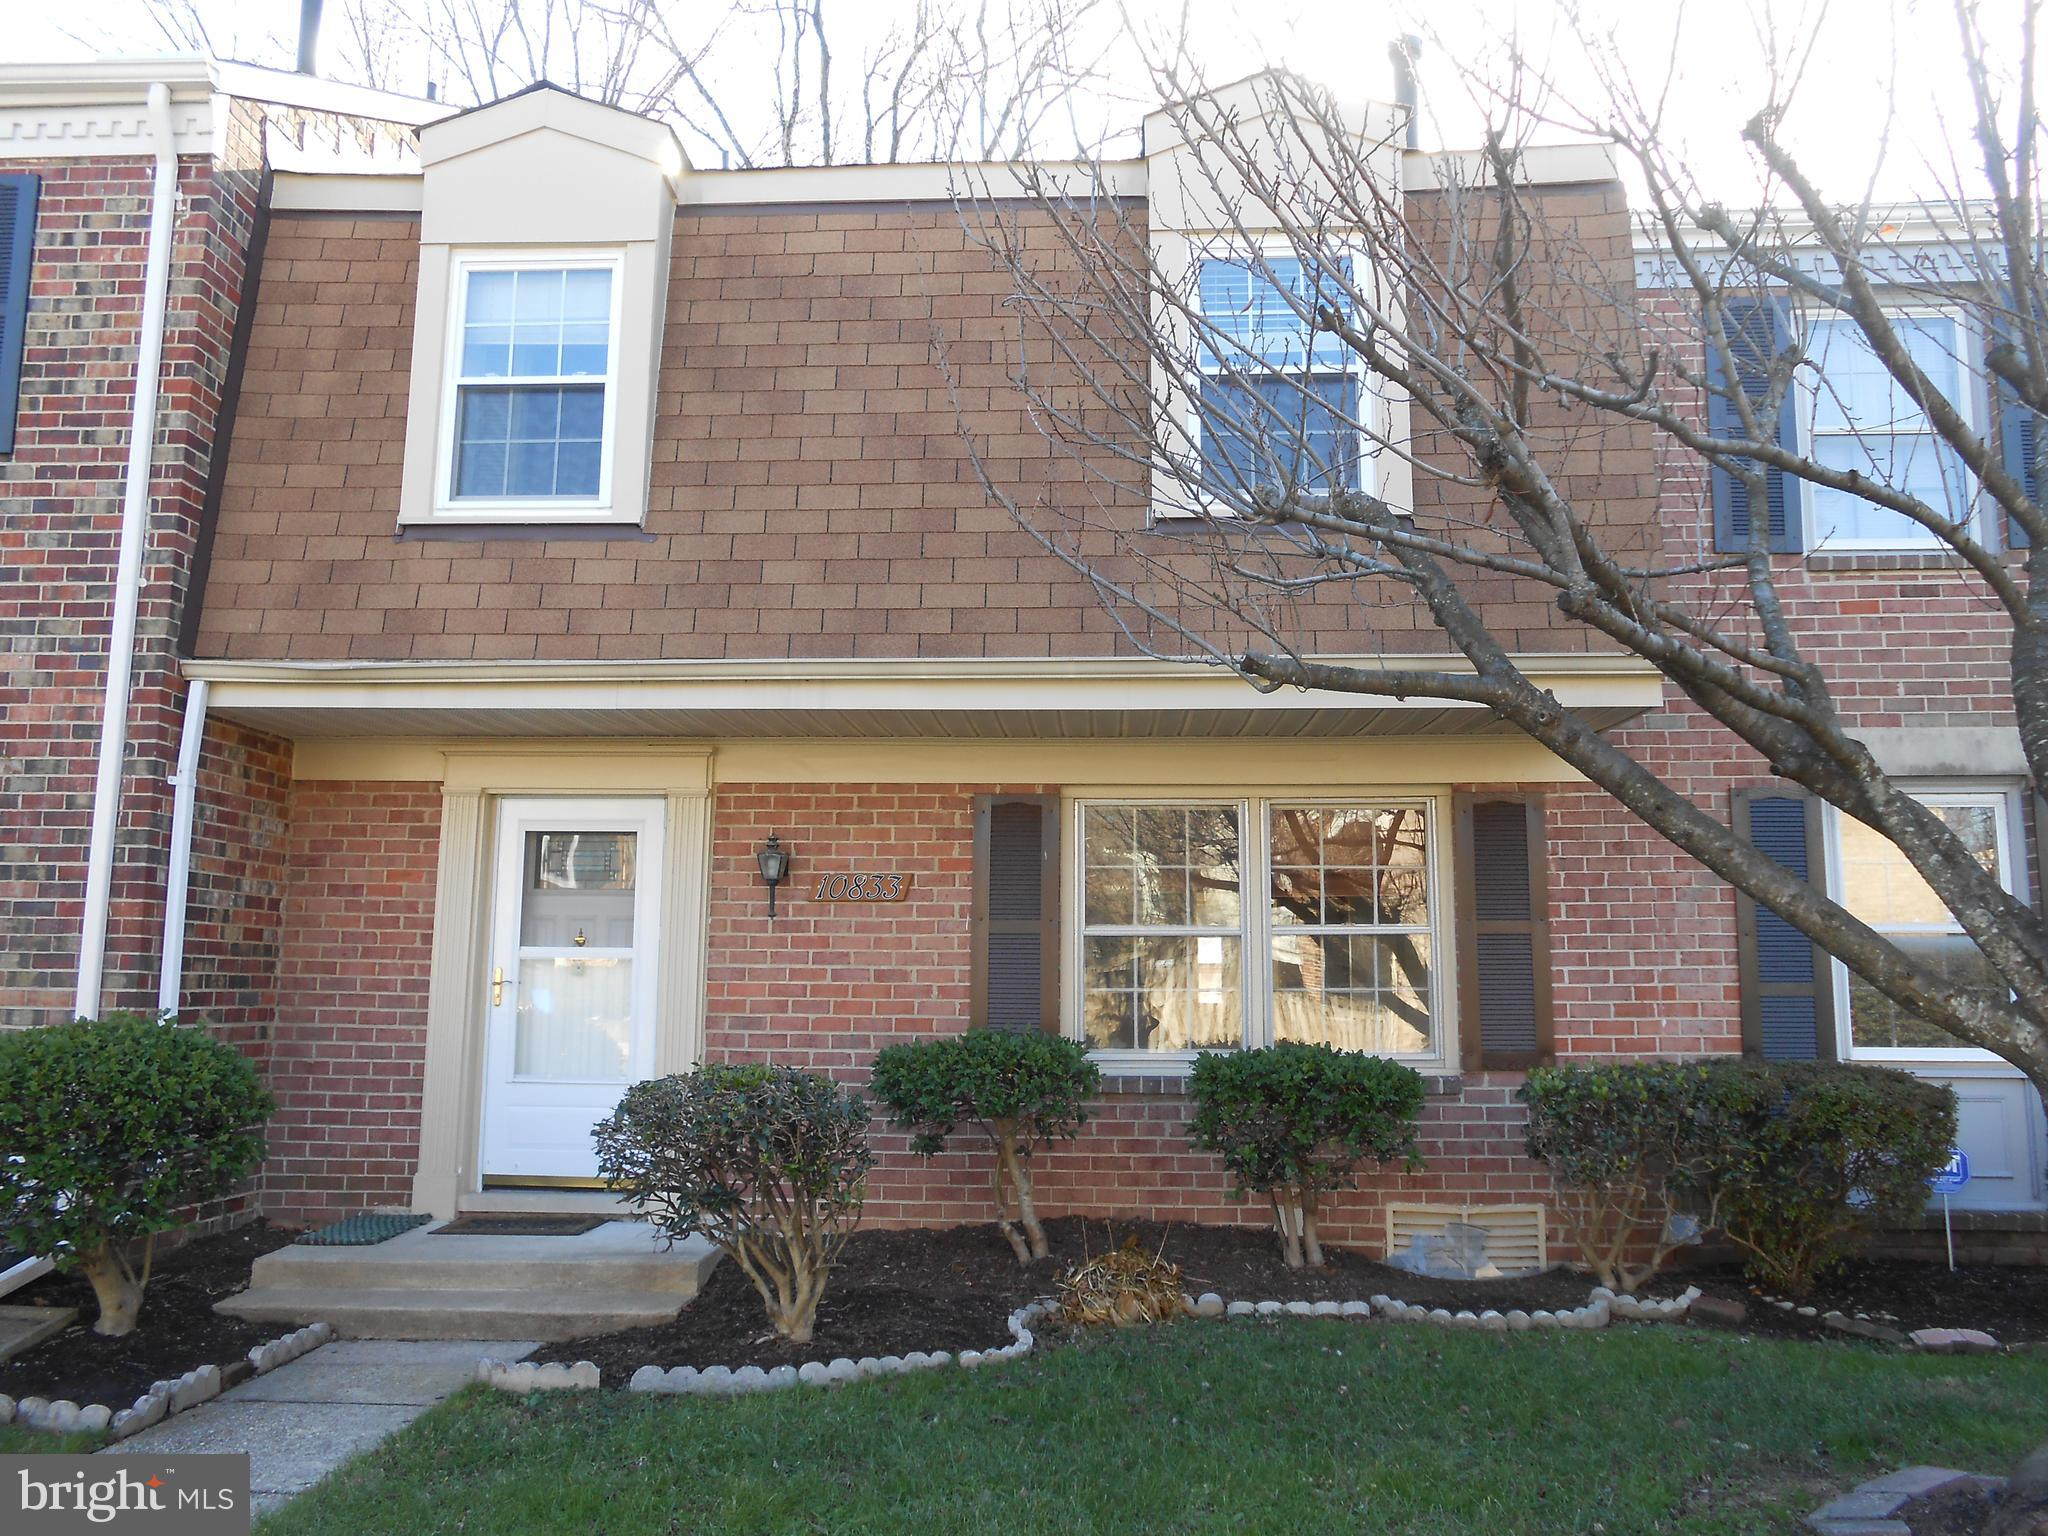 WOW! THIS THREE LEVEL TOWN HOUSE HAS IT ALL - LOCATION, SPACE, COMMUNITY. FOUR BEDROOMS, 2.5 BATHS,